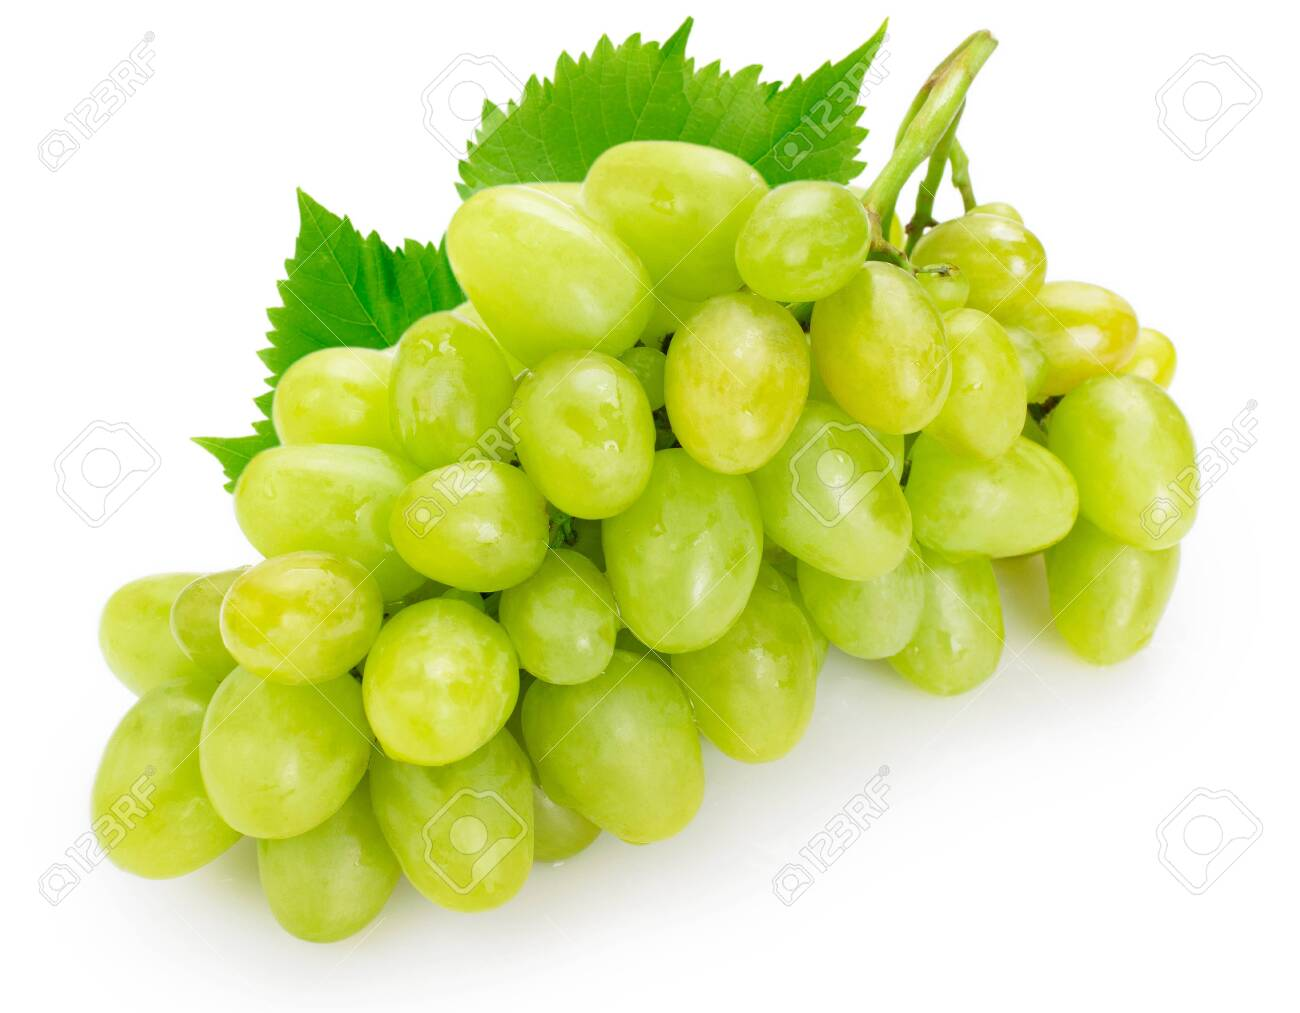 fresh green grape isolated on white background - 138900090